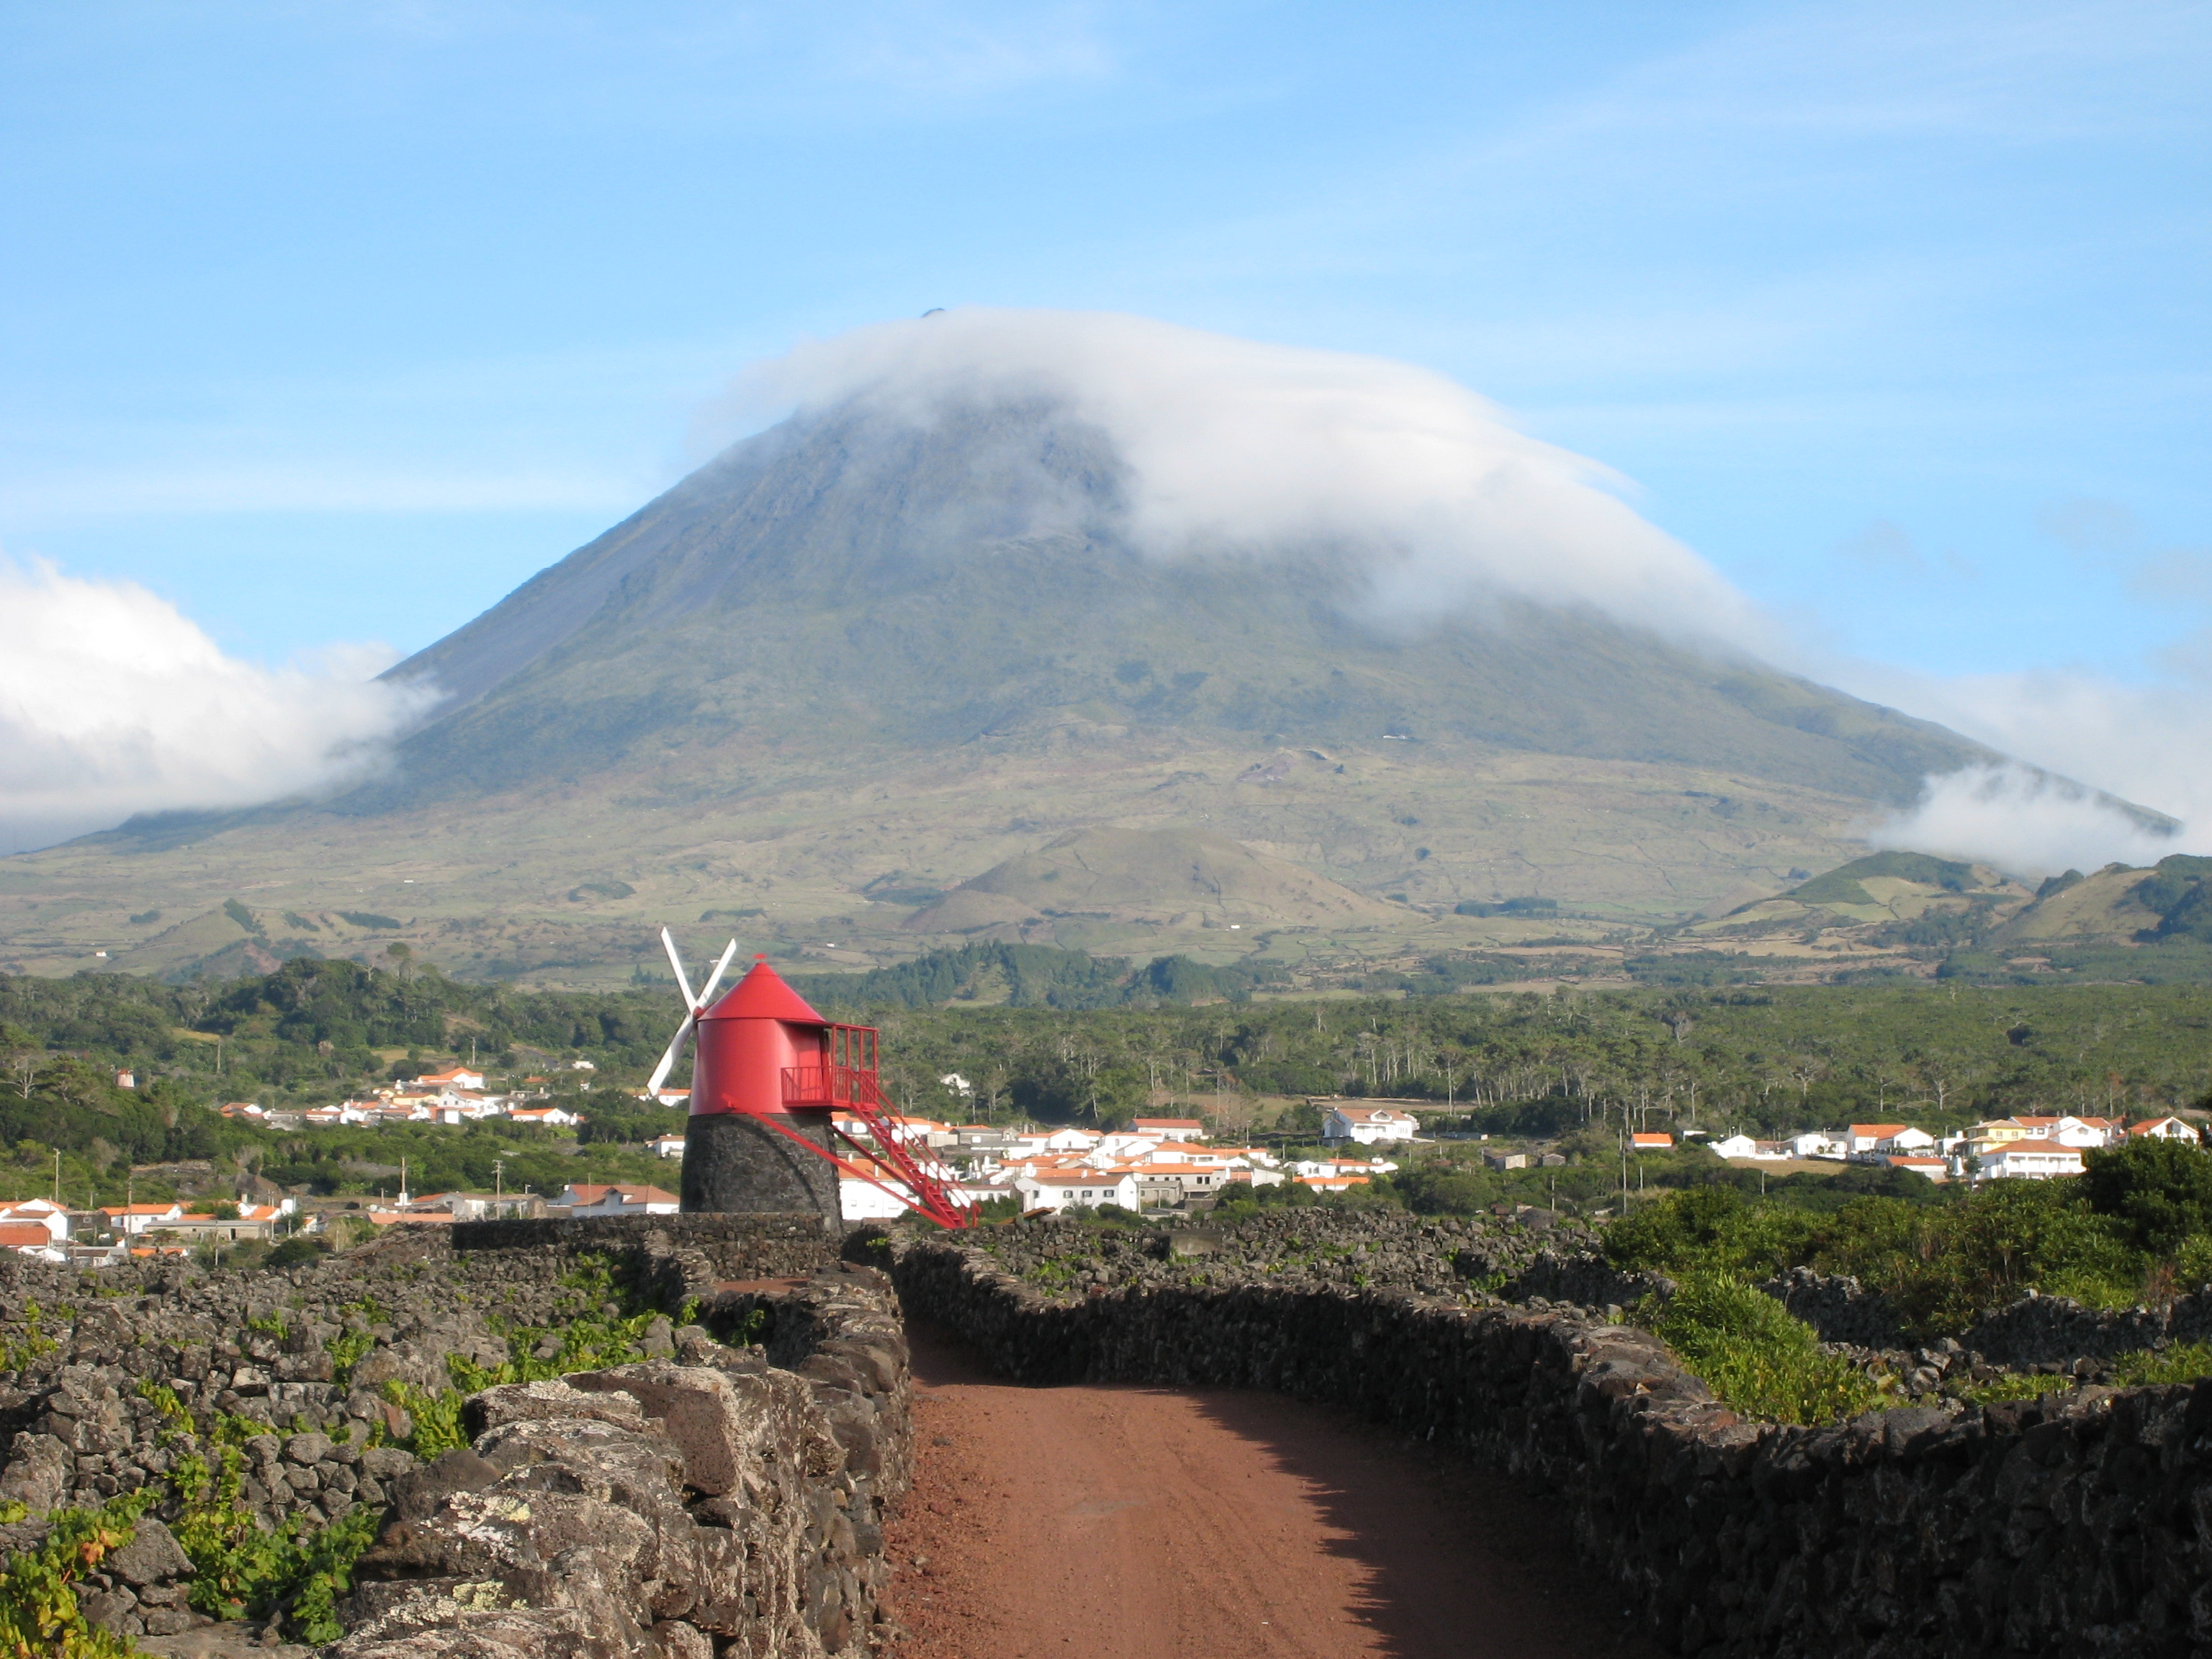 View of Pico